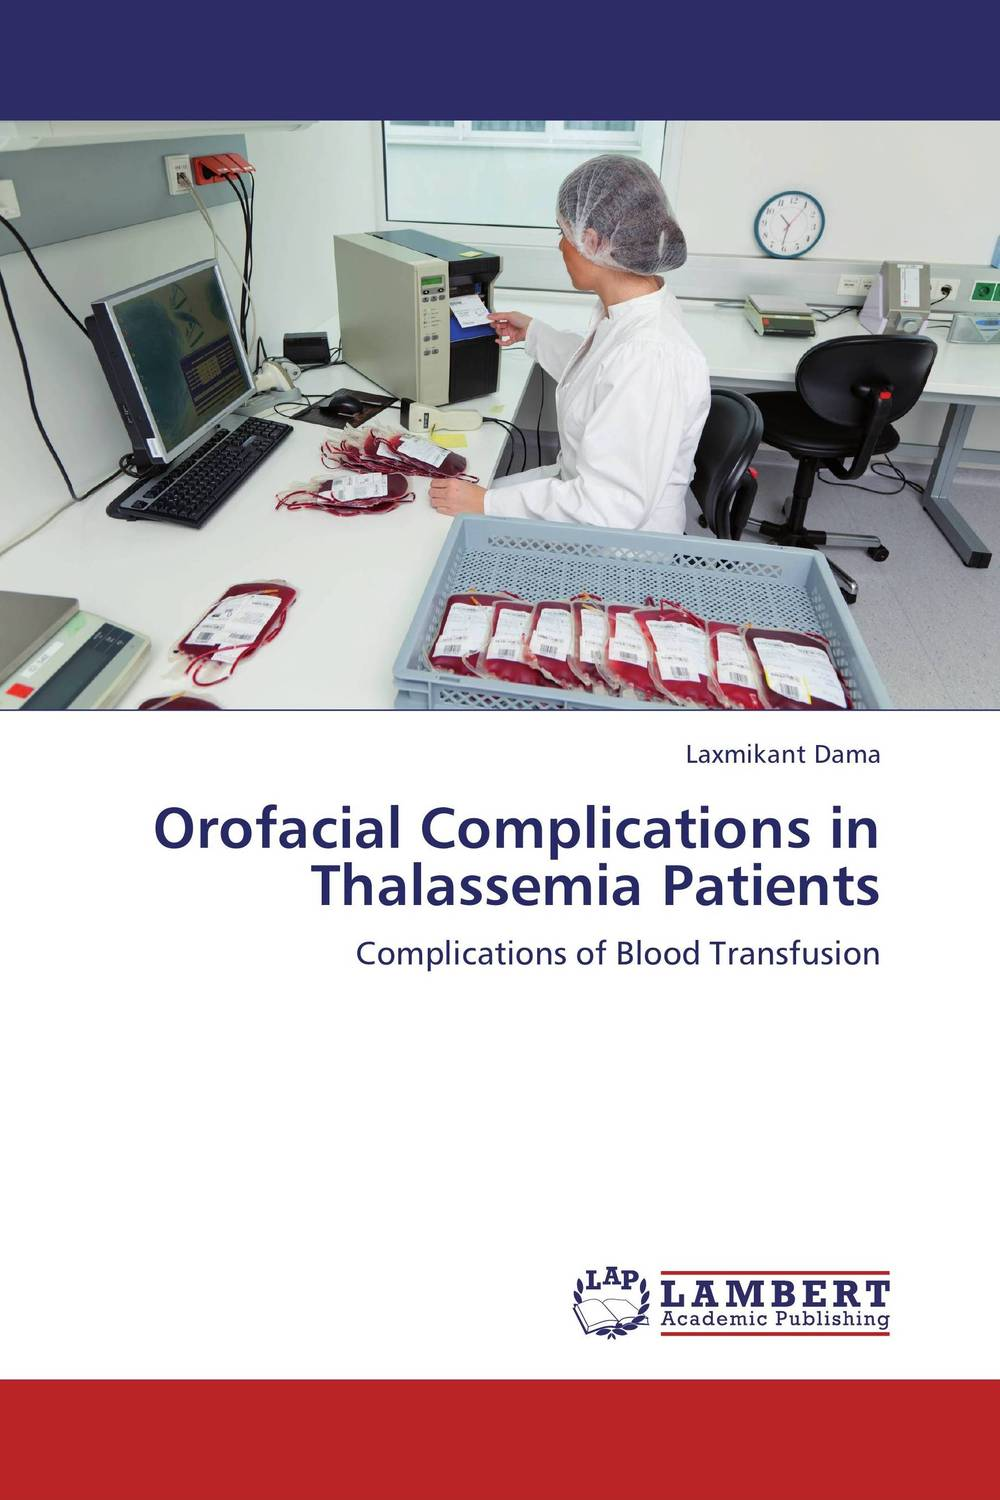 Orofacial Complications in Thalassemia Patients peter lockhart b oral medicine and medically complex patients